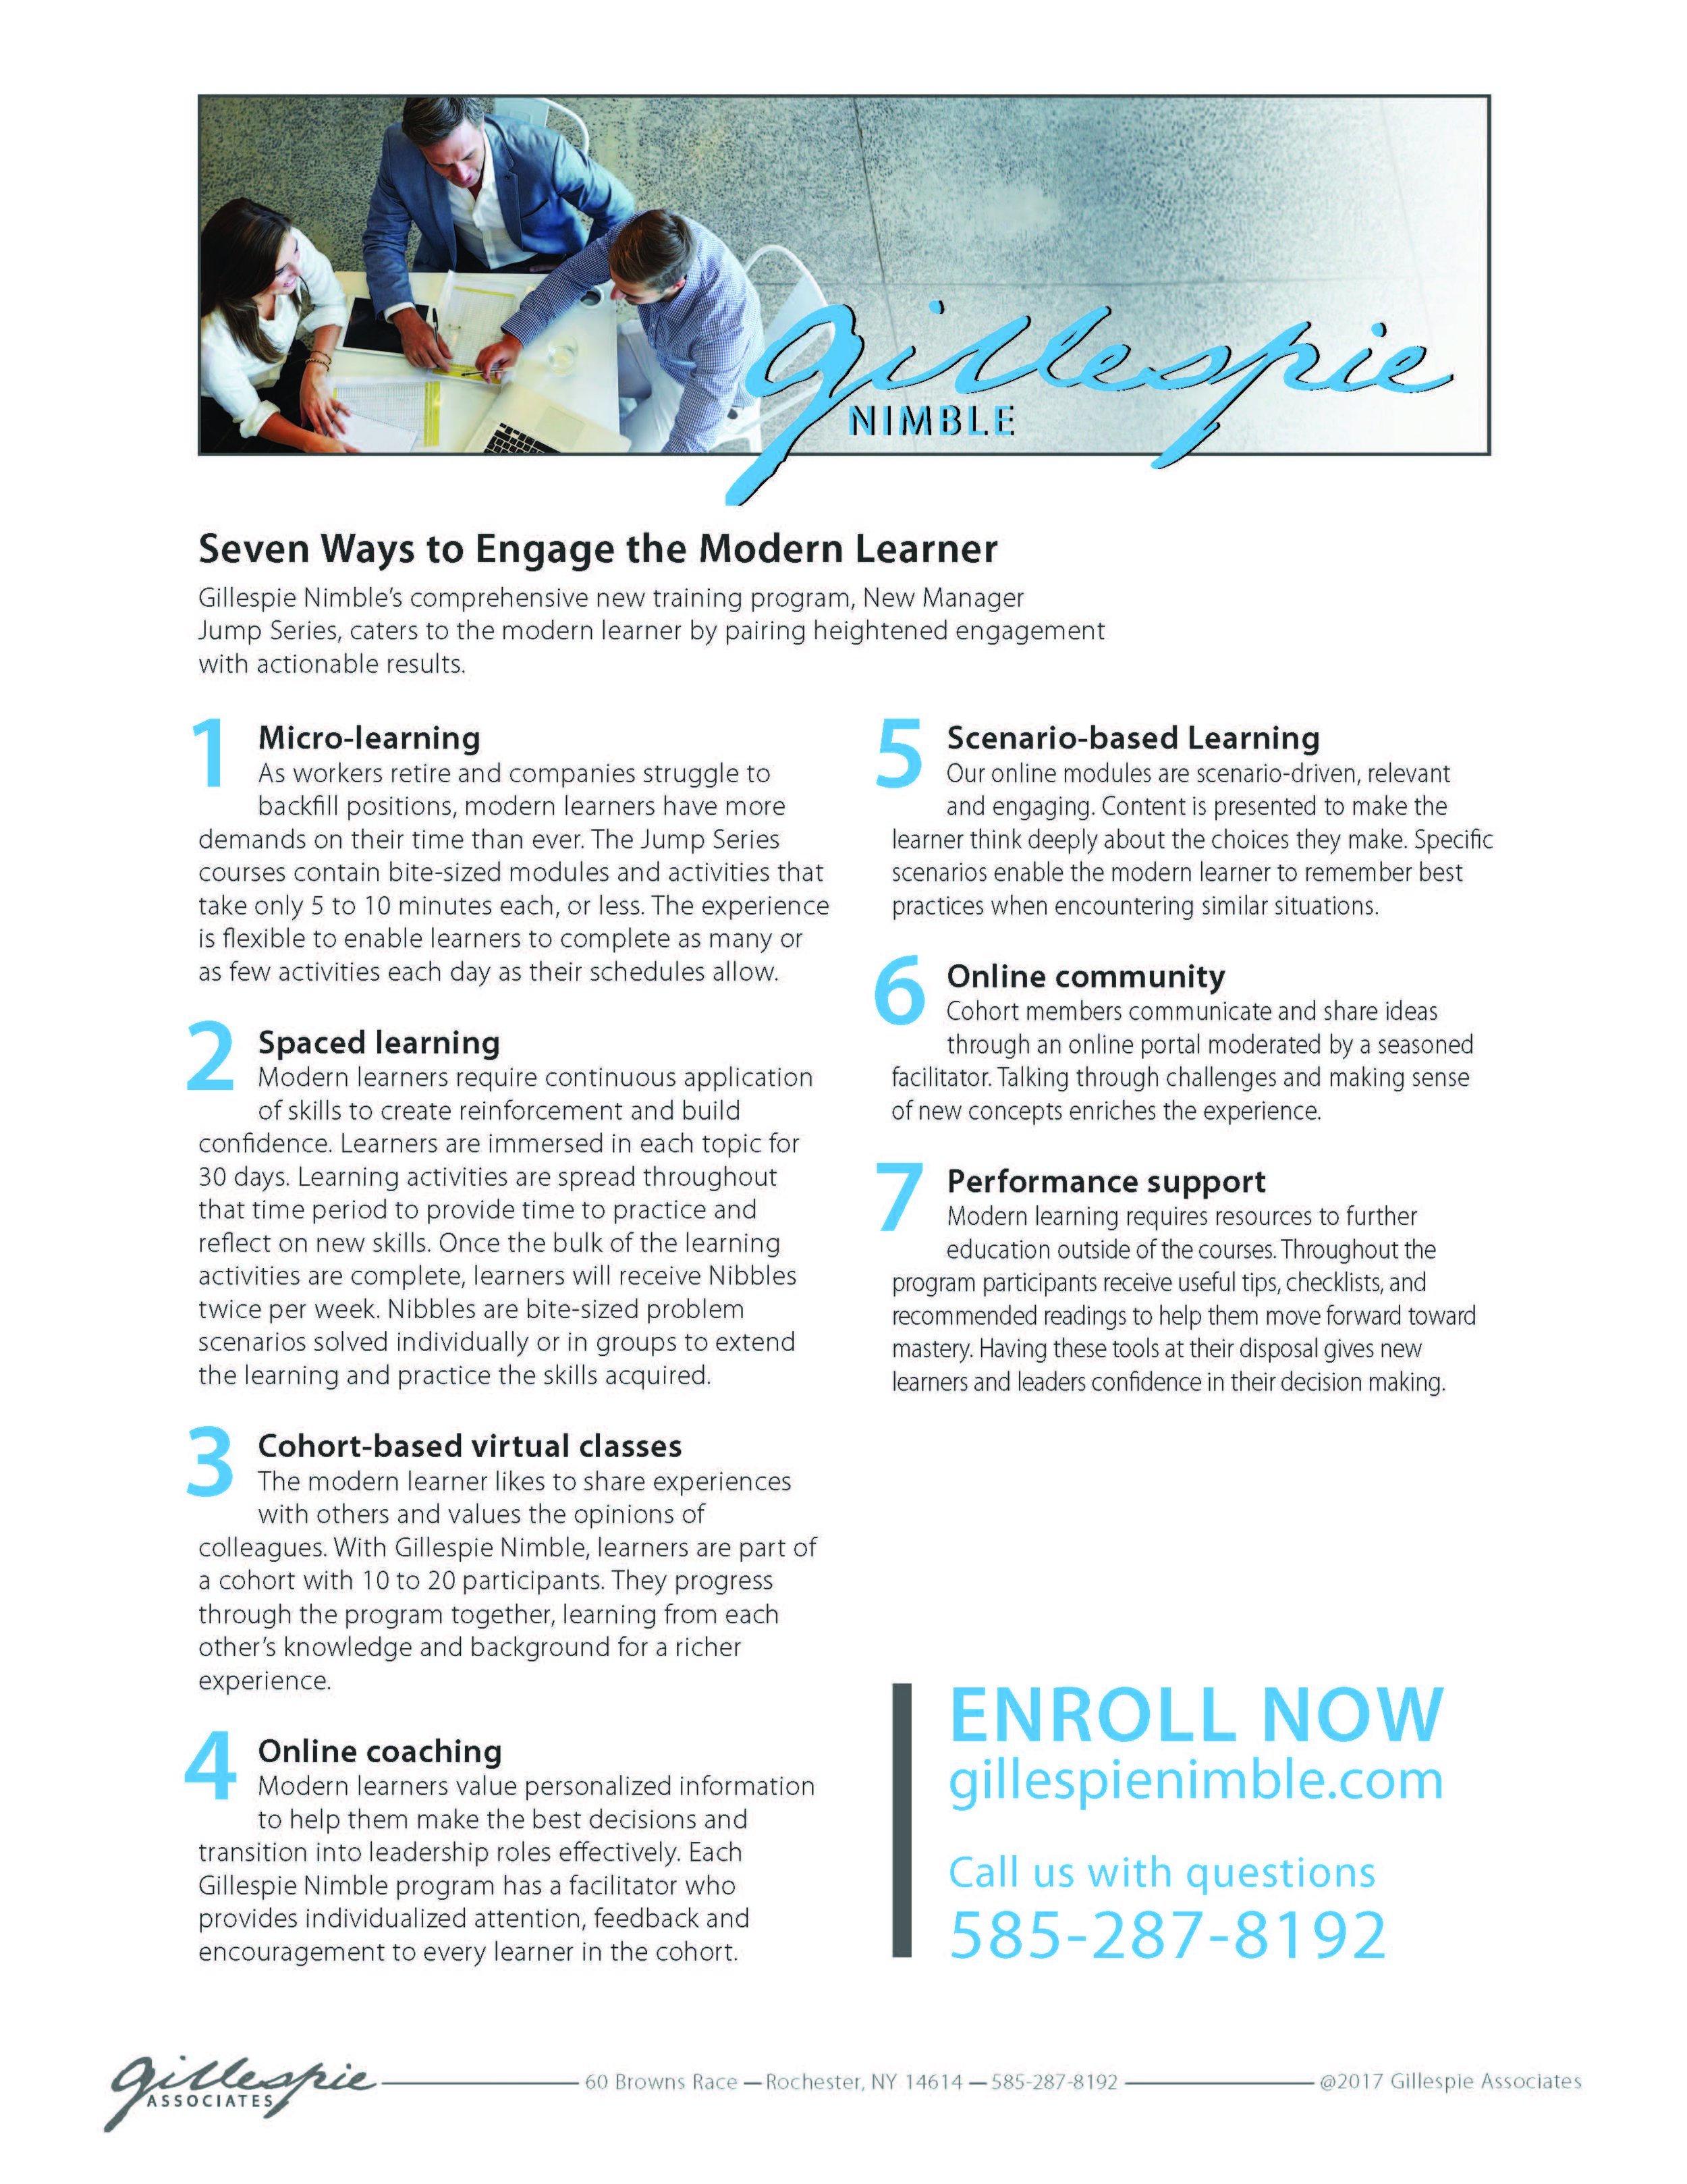 TipSheet-Engage the Modern Learner.PNG